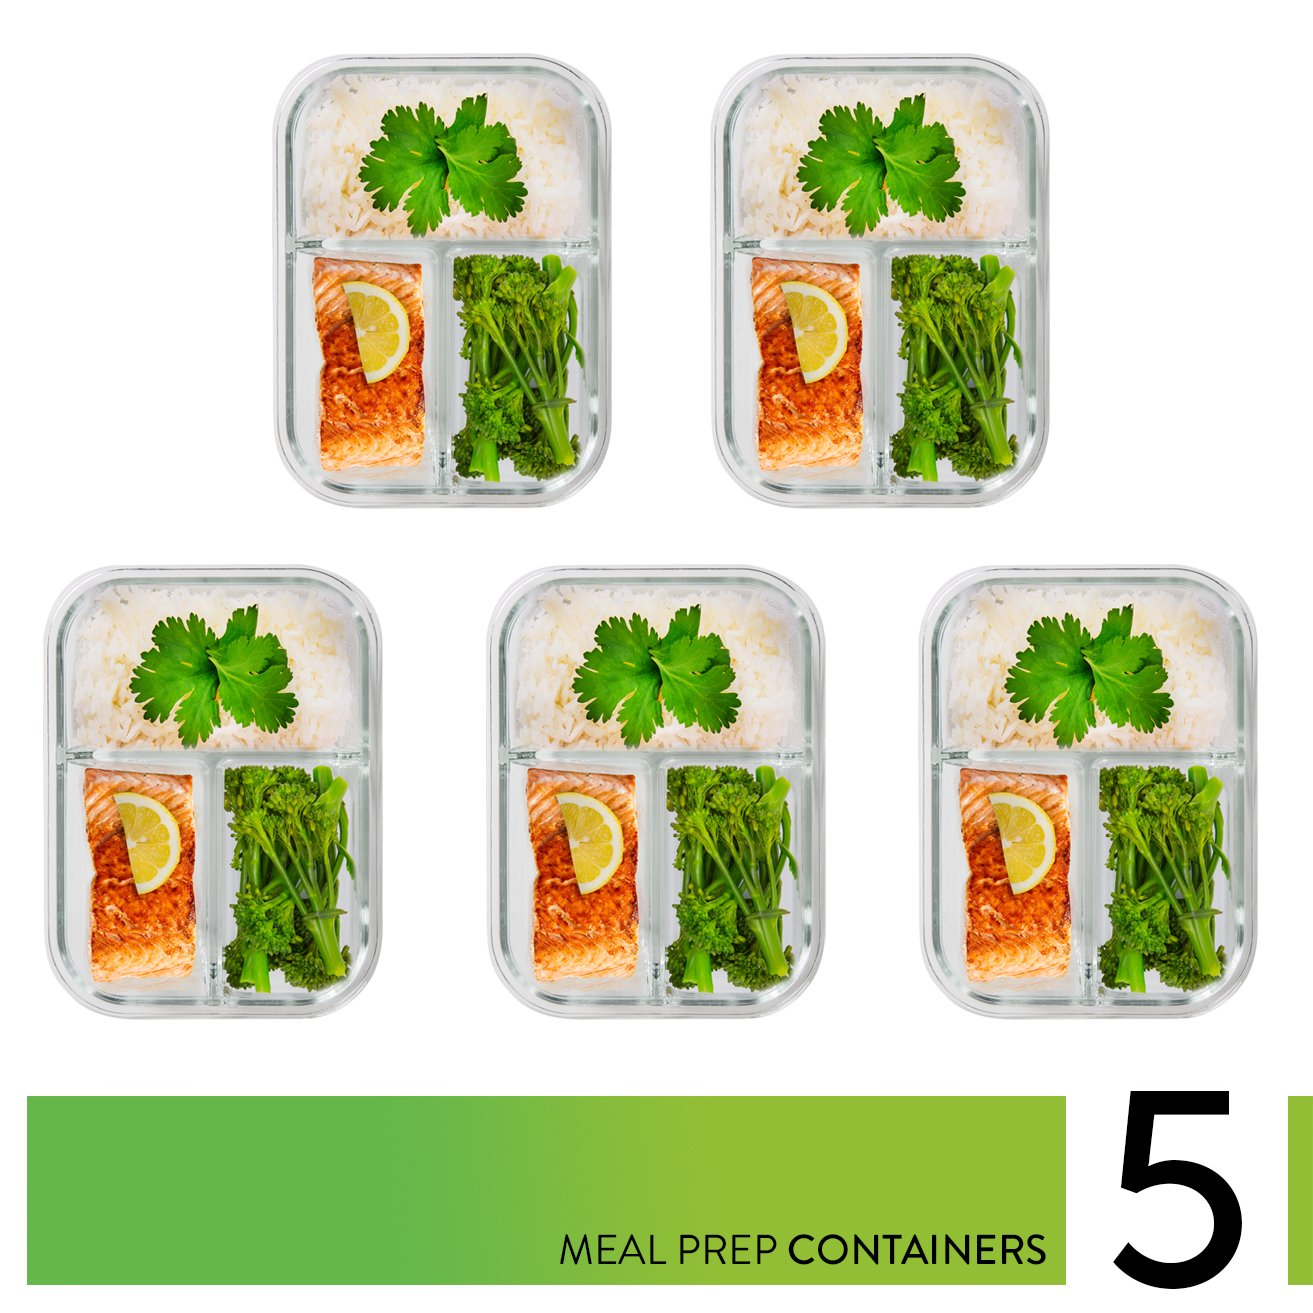 [5-Pack] Glass Meal Prep Containers 3 Compartment - Bento Box Containers Glass Food Storage Containers with Lids - Food Prep Containers Glass Storage Containers with lids Lunch Containers by Prep Naturals (Image #2)